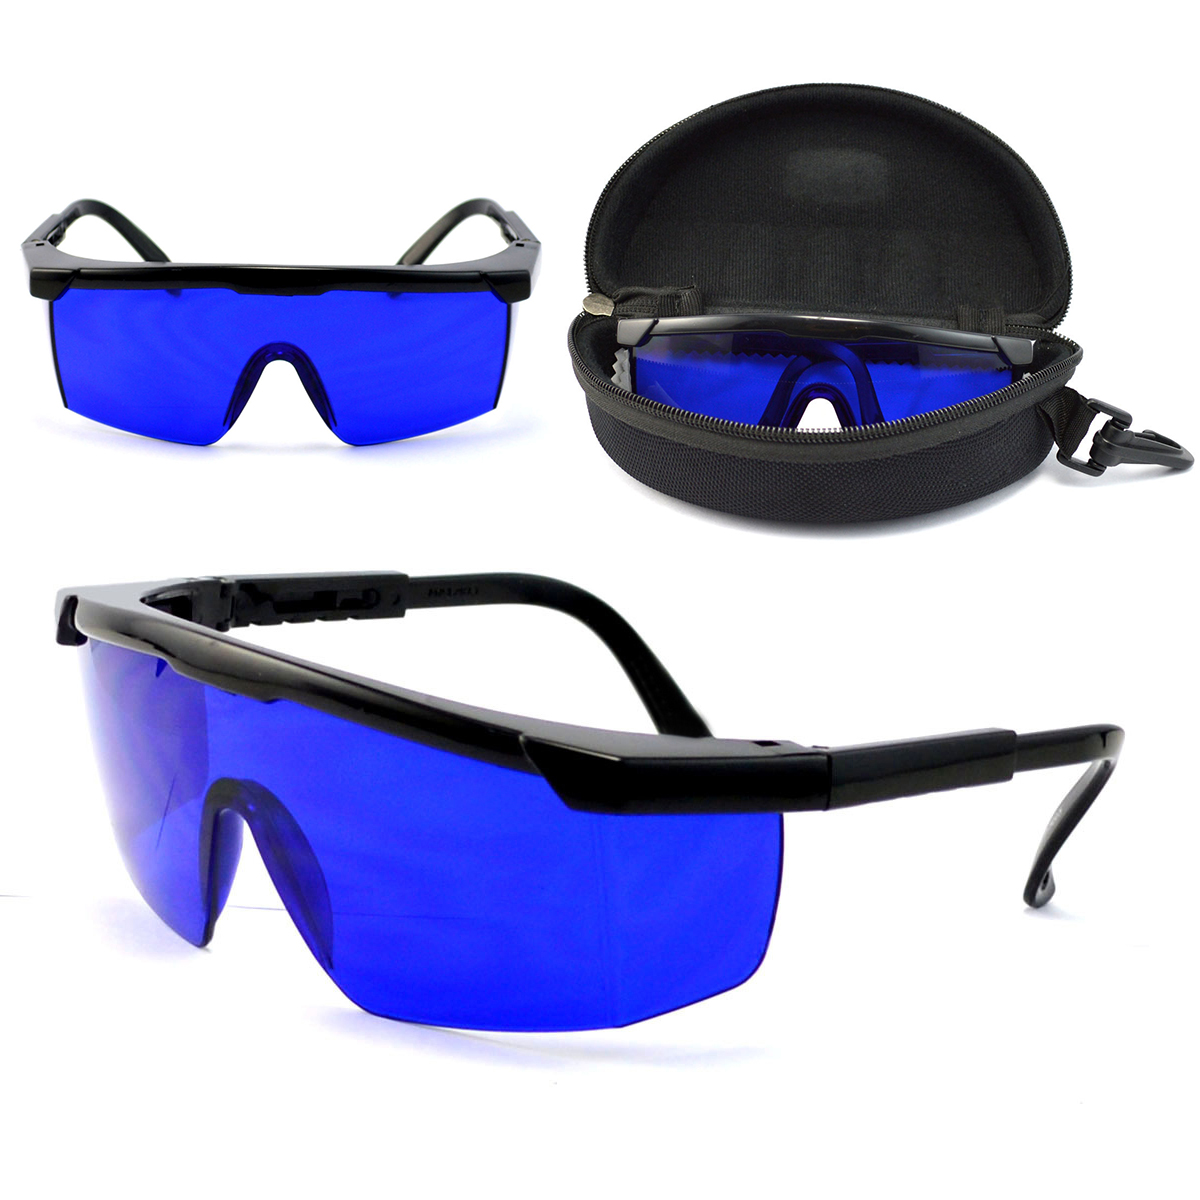 046481cde16 Buy golfing glasses and get free shipping on AliExpress.com